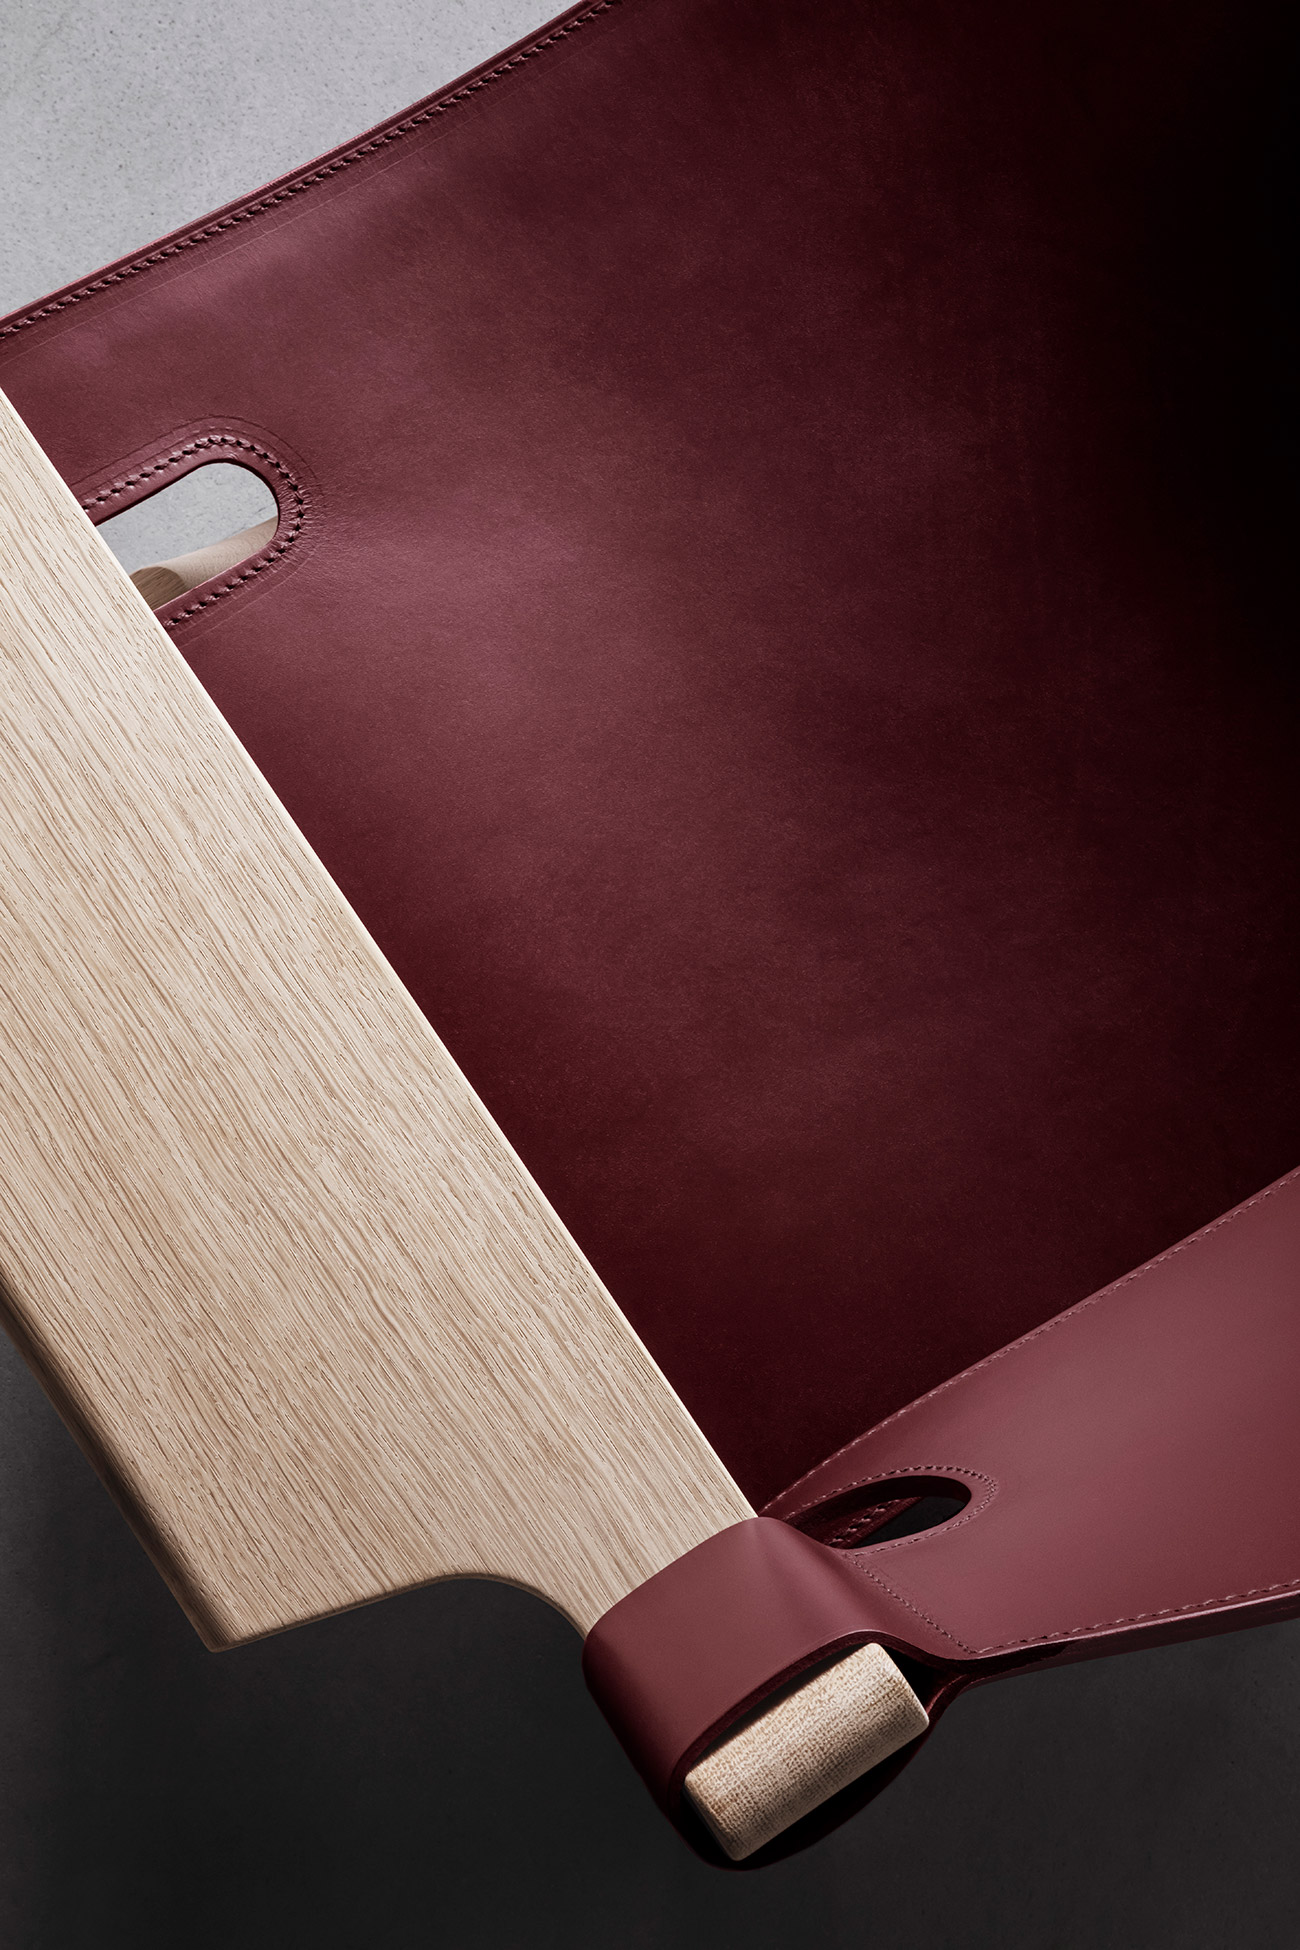 Detail of Spanish Chair in deep red by Fredericia